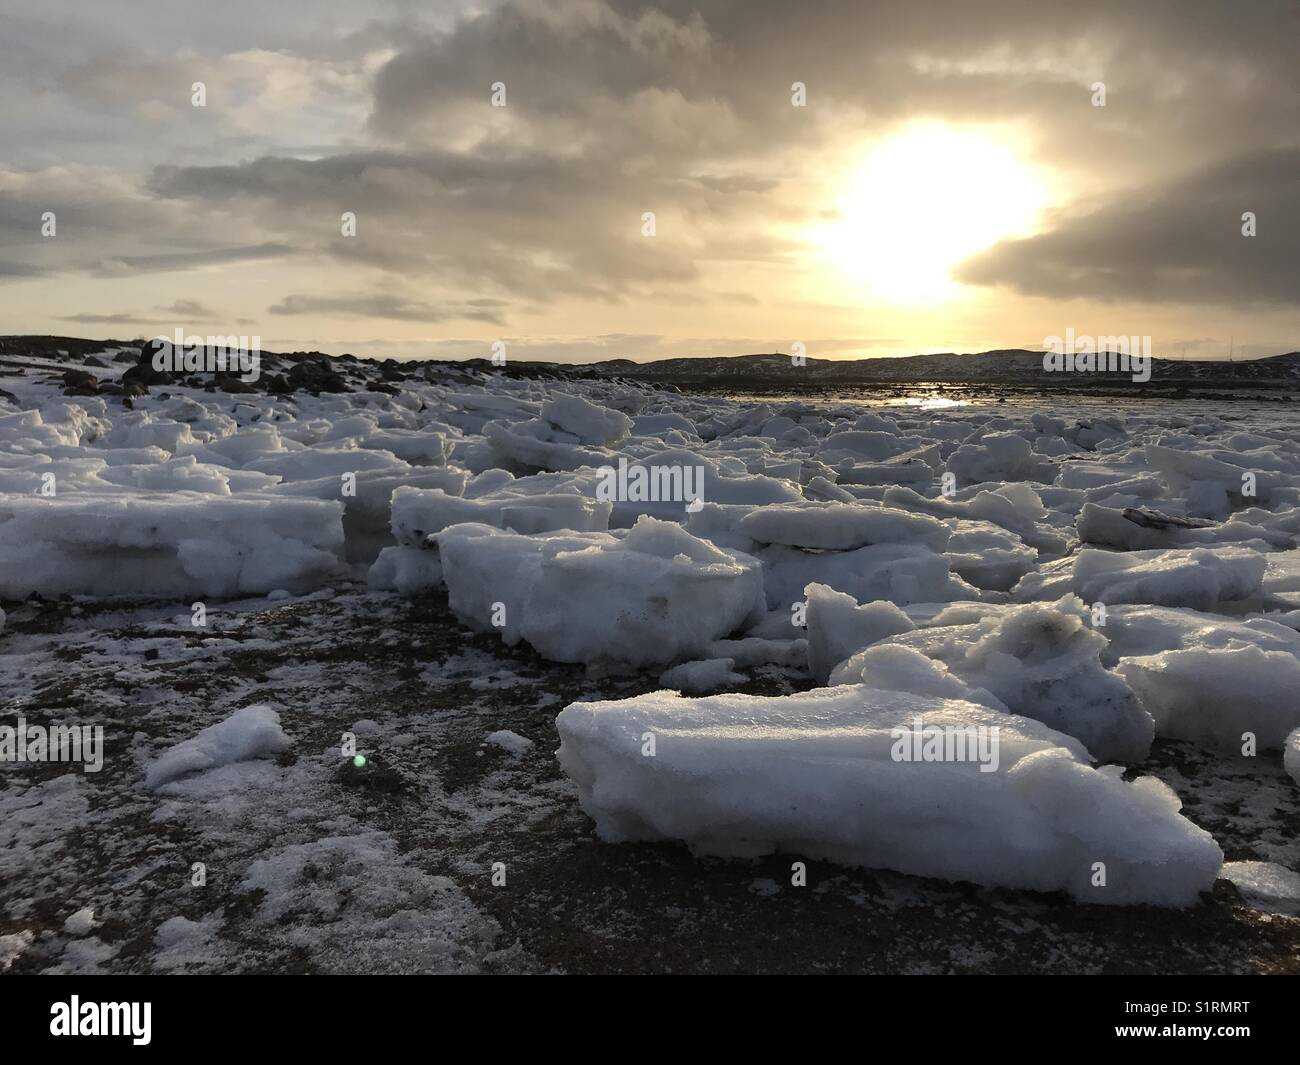 Ice on Frobisher Bay, Nunavut, Canada, during sunset - Stock Image